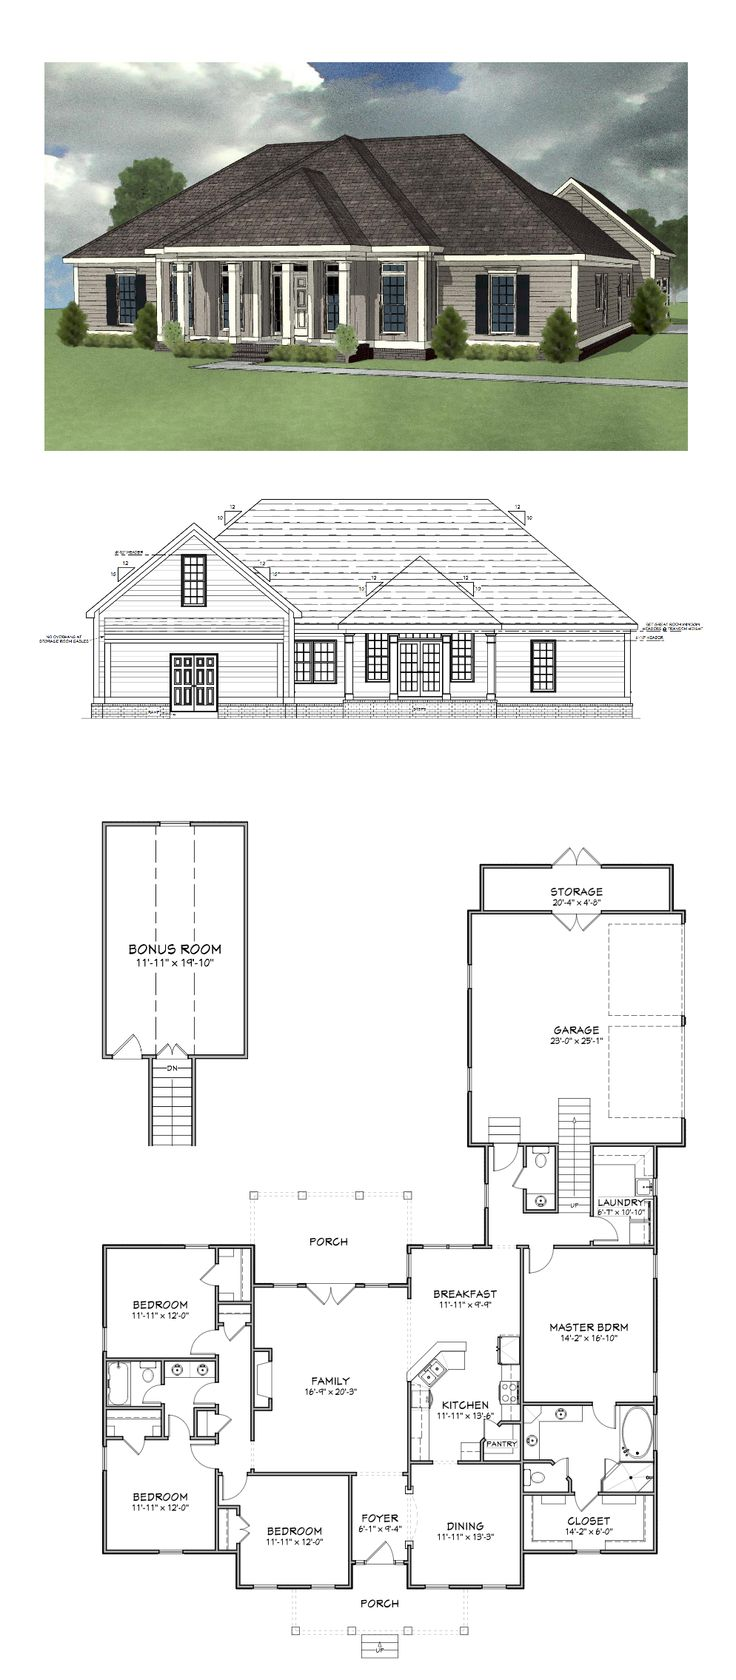 17 best house plans 2000 2800 sq ft images on pinterest 2800 square foot house plans